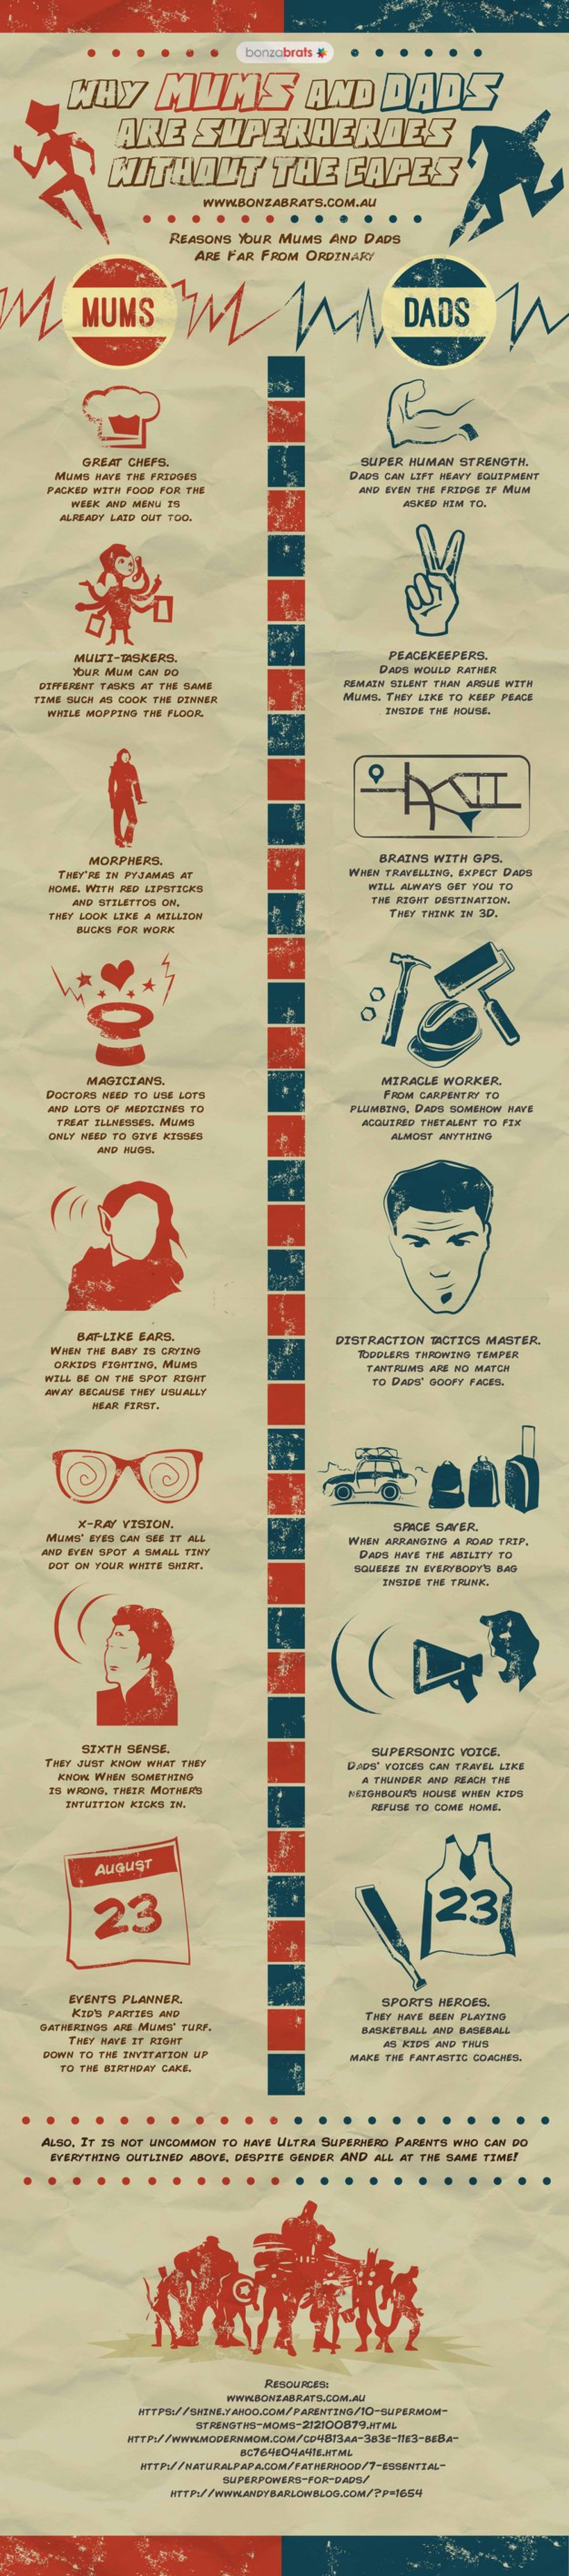 WHY MUMS AND DADS ARE SUPERHEROES WITHOUT THE CAPES Infographic